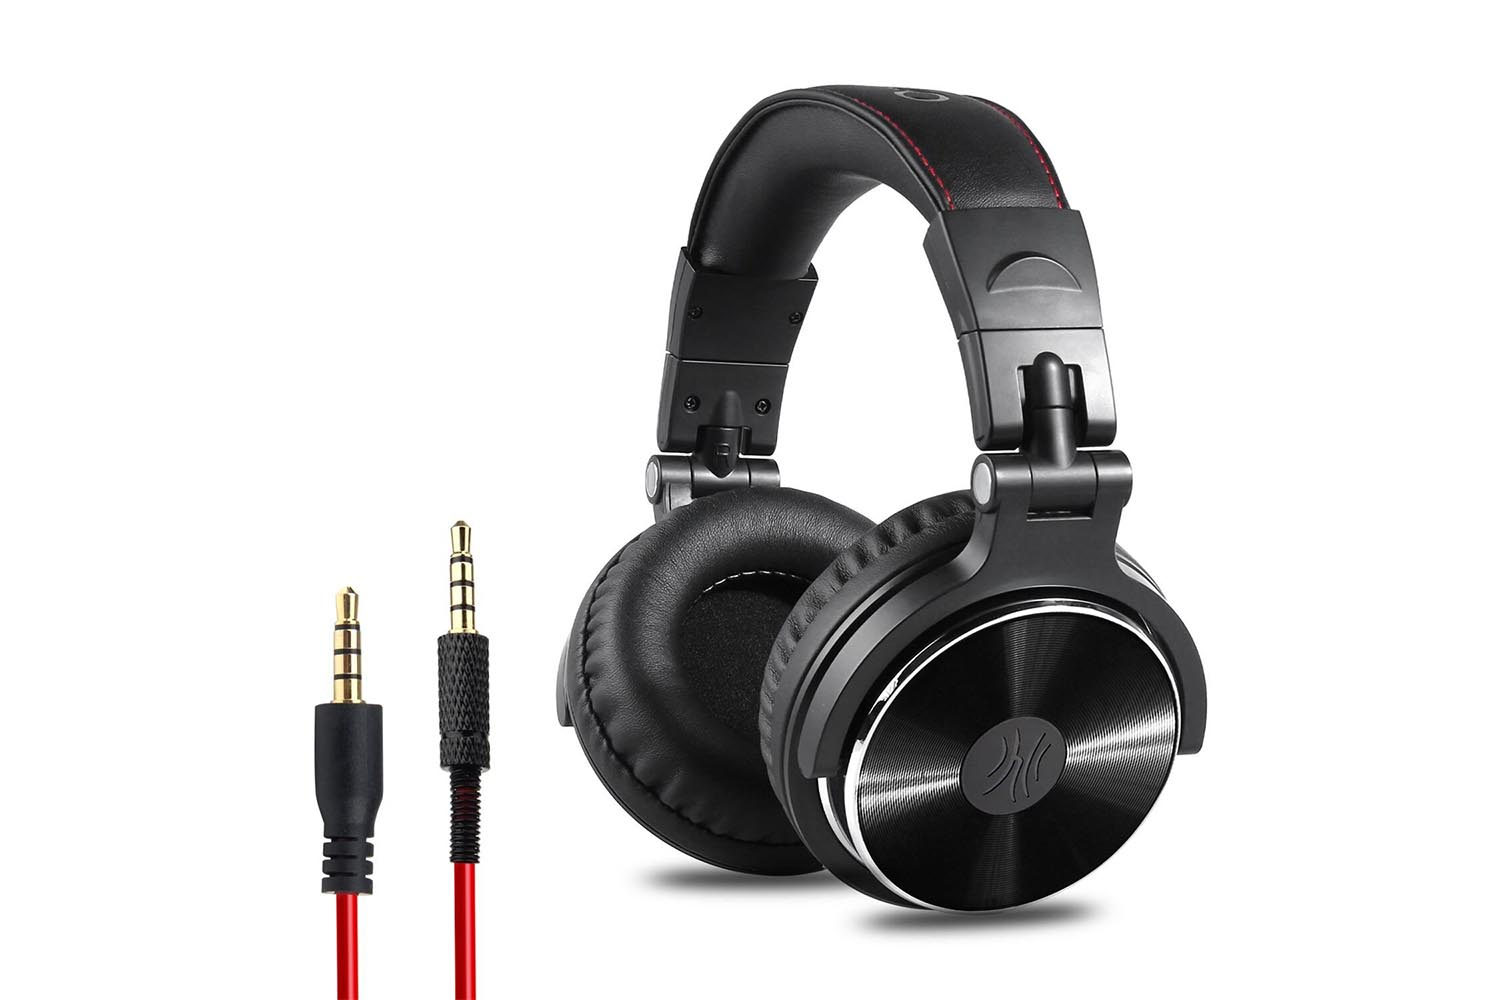 Auriculares OneOdio Adapter-free Closed-Back DJ Studio